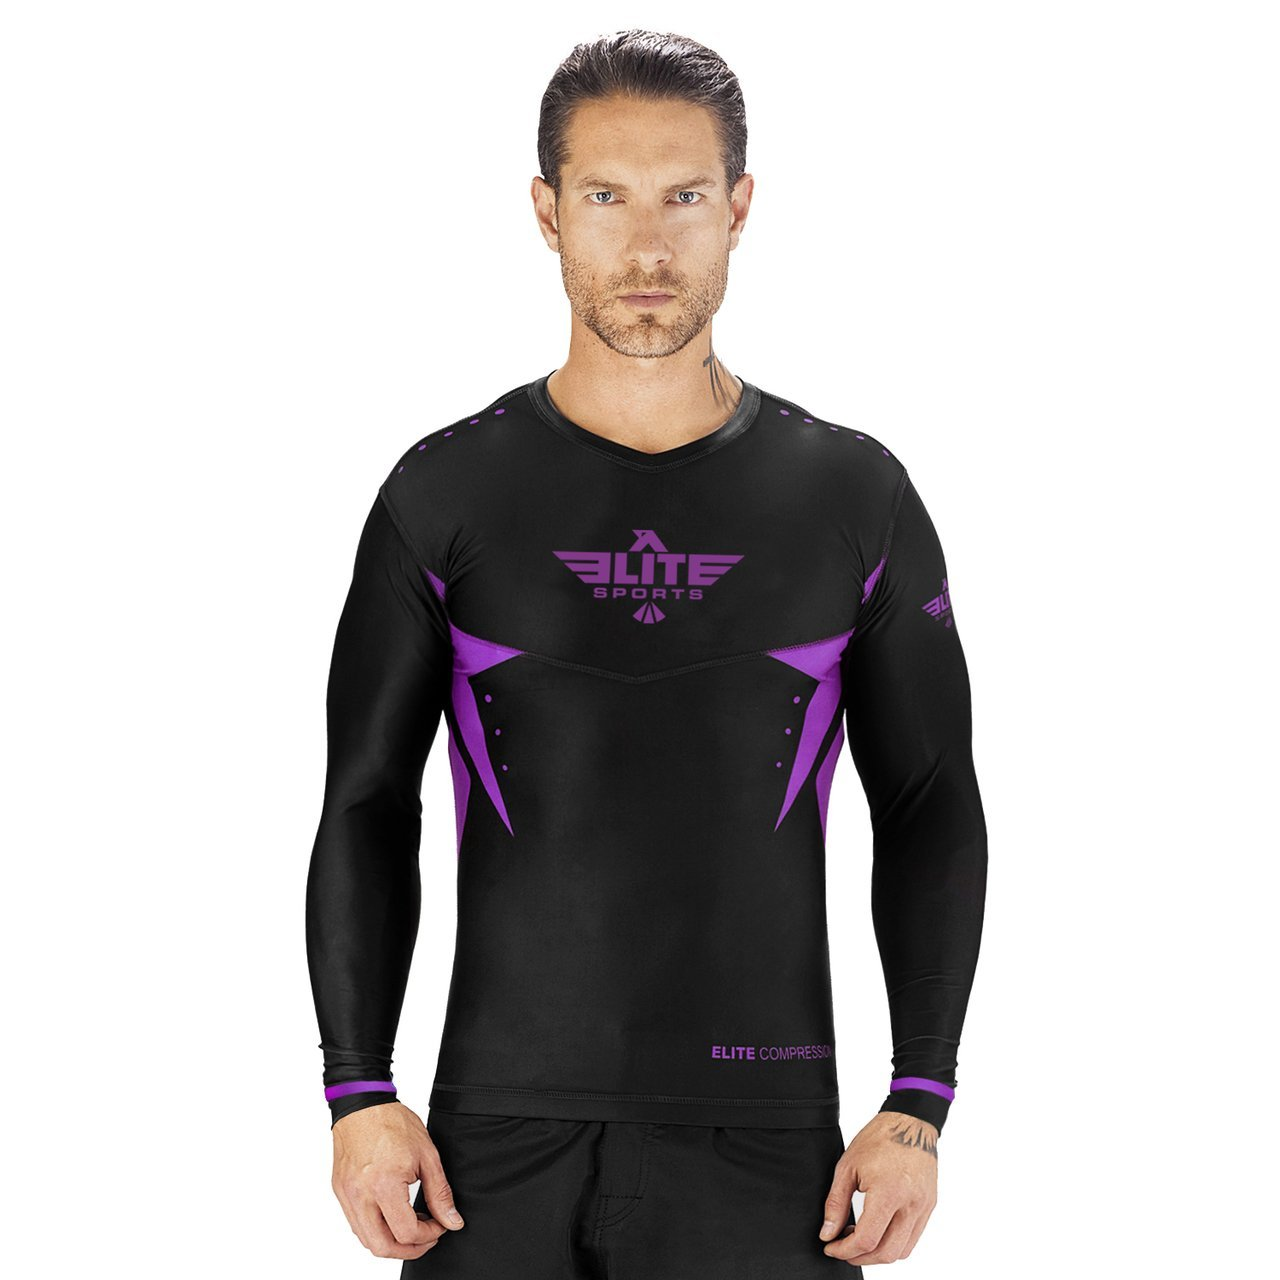 Load image into Gallery viewer, Elite Sports Star Series Sublimation Black/Purple Long Sleeve Wrestling Rash Guard